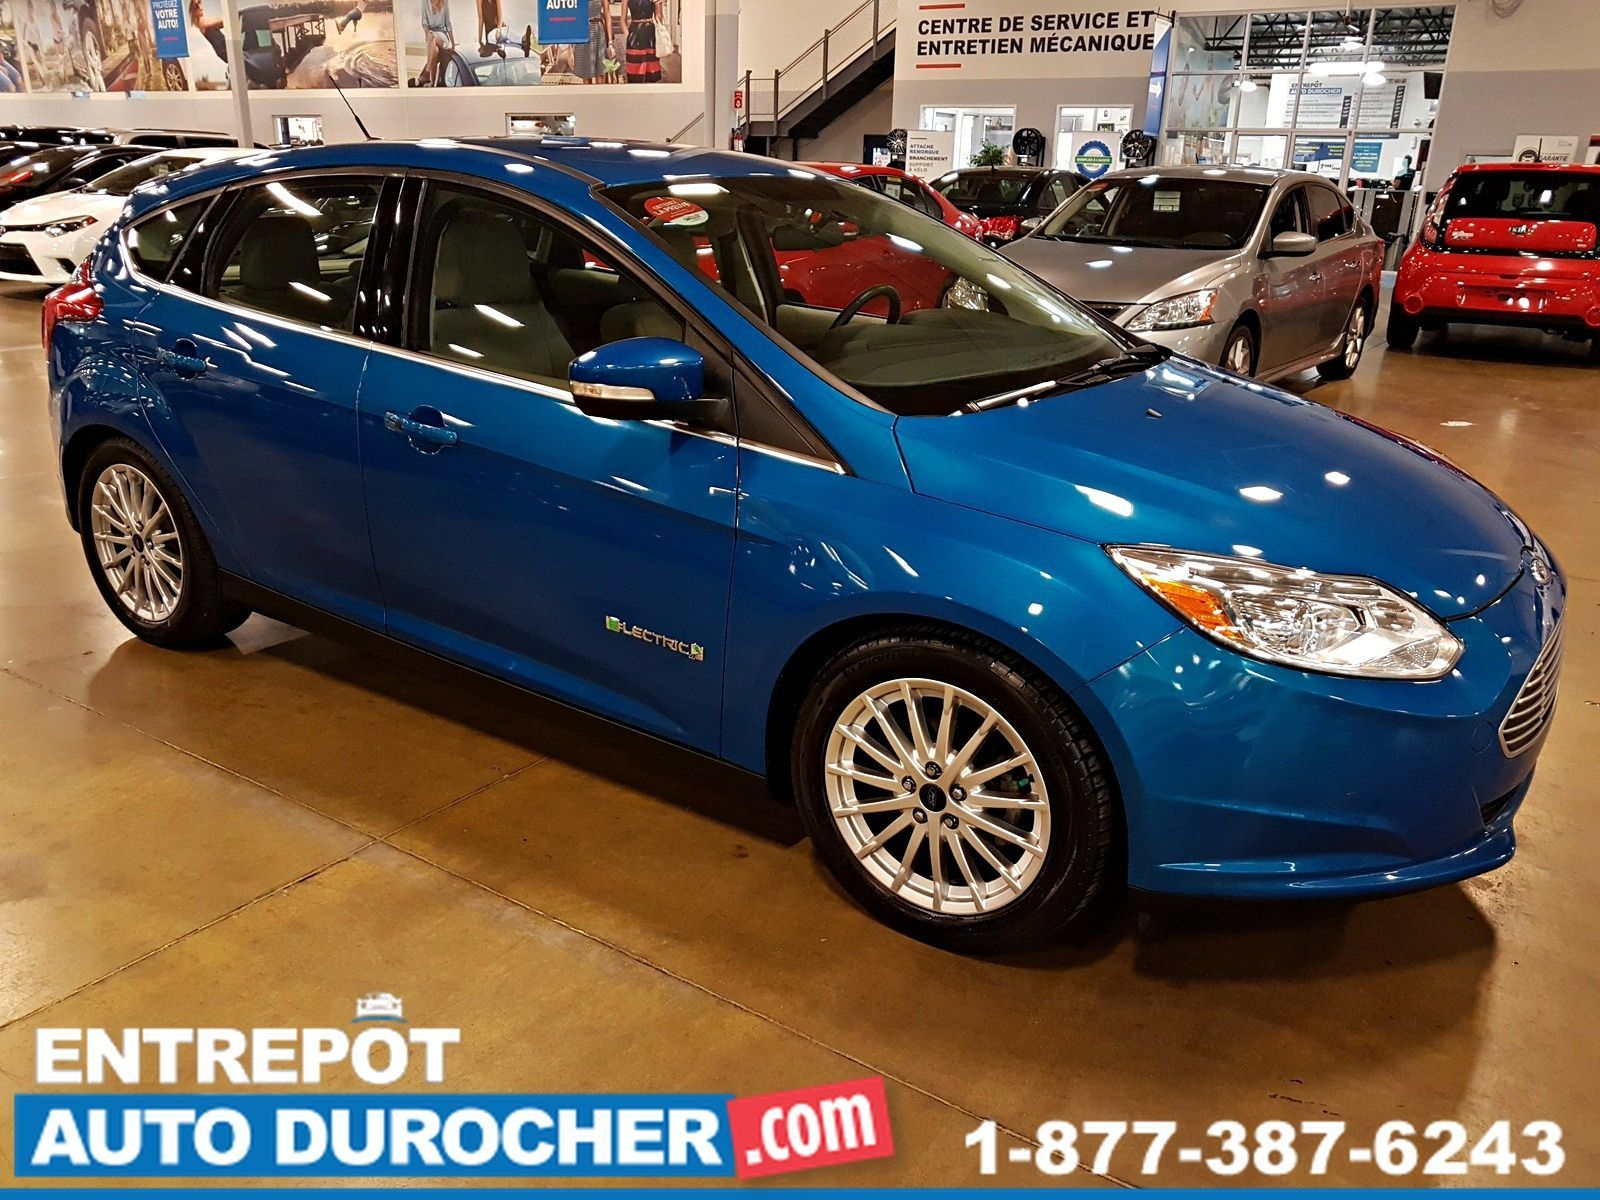 Auto Durocher Used Ford Focus Electric 2014 For Sale In Laval Motor Automatique Air Climatis Camra De Recul Heated Seats